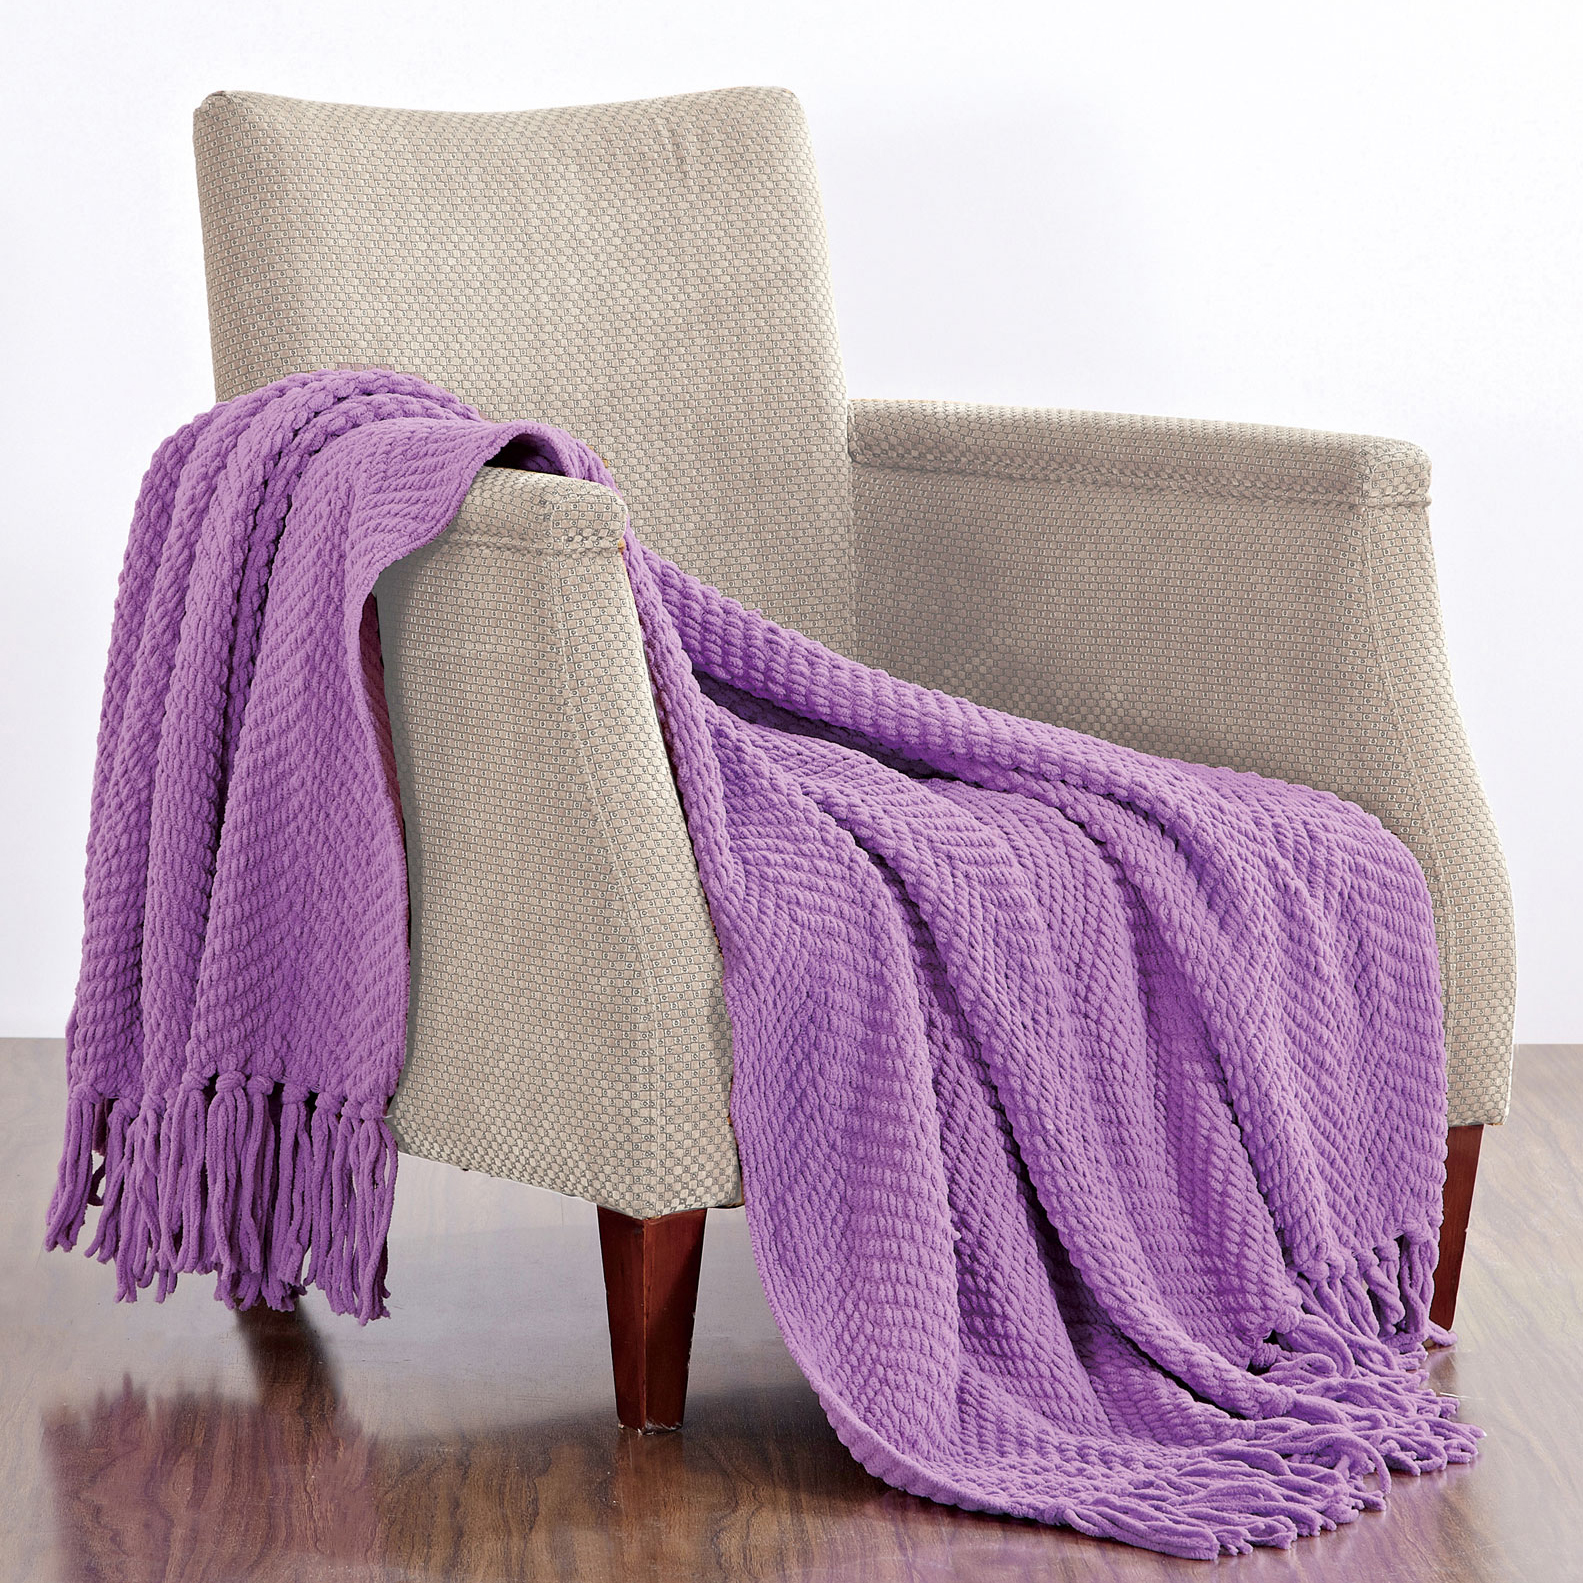 Click here to buy BOON Throw & Blanket Knitted Tweed Throw Blanket by BOON Throw & Blanket.